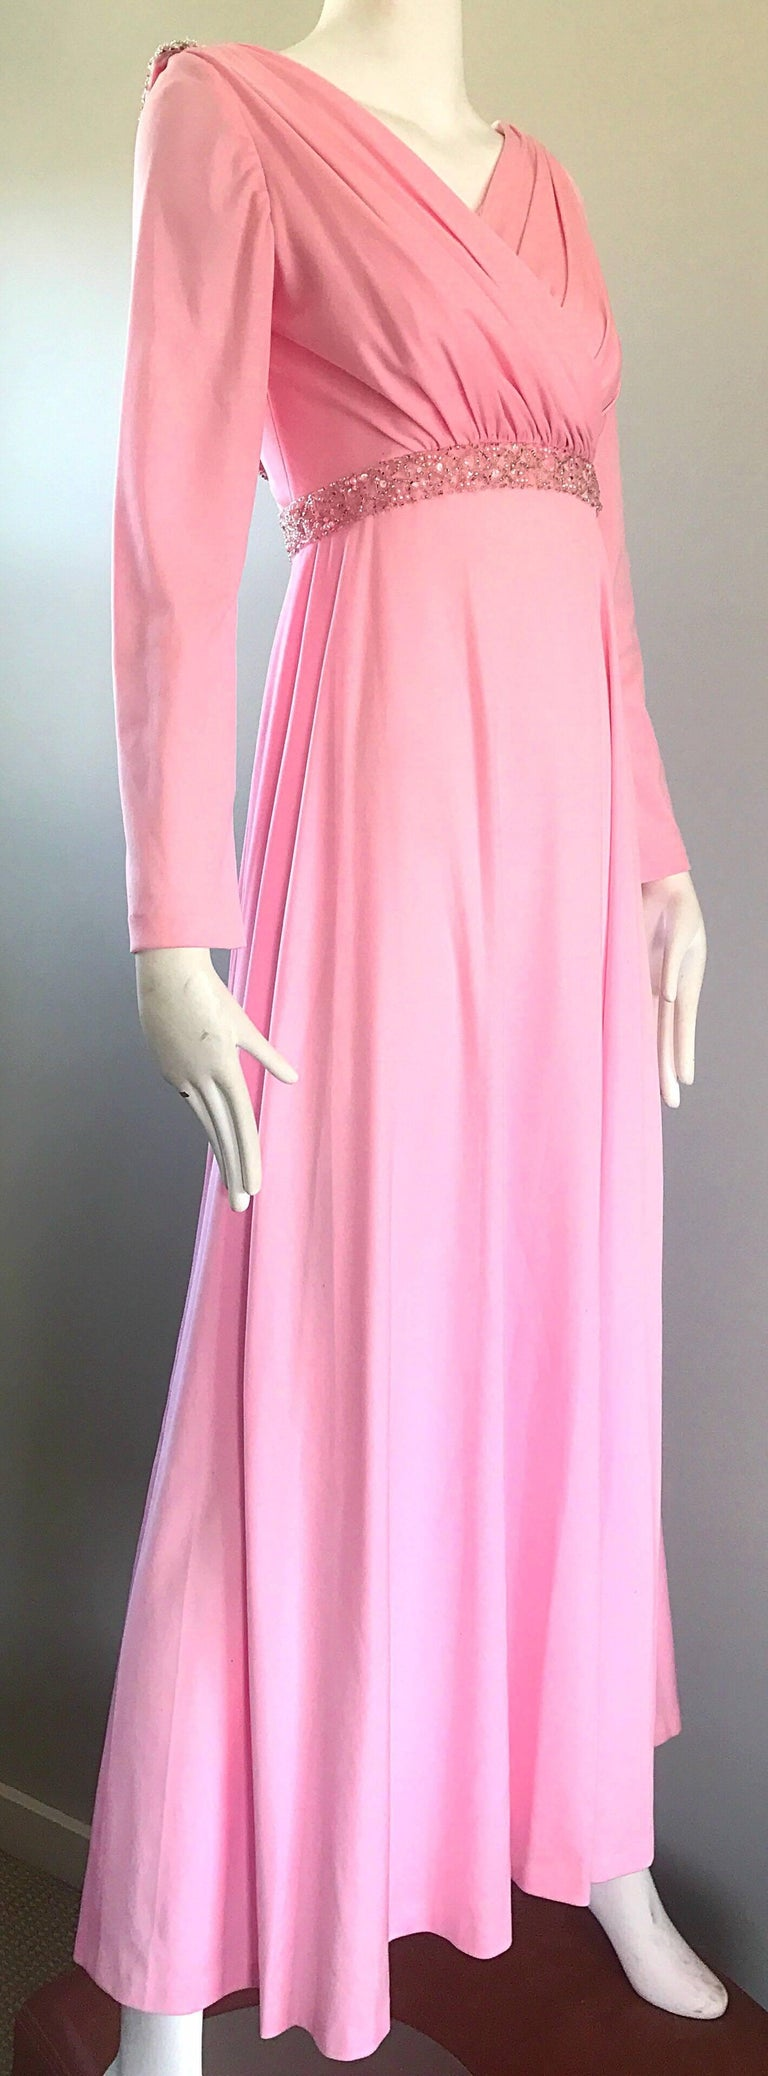 Women's Amazing 1970s Light Pink Grecian Sequined and Beaded Long Sleeve Maxi Dress Gown For Sale